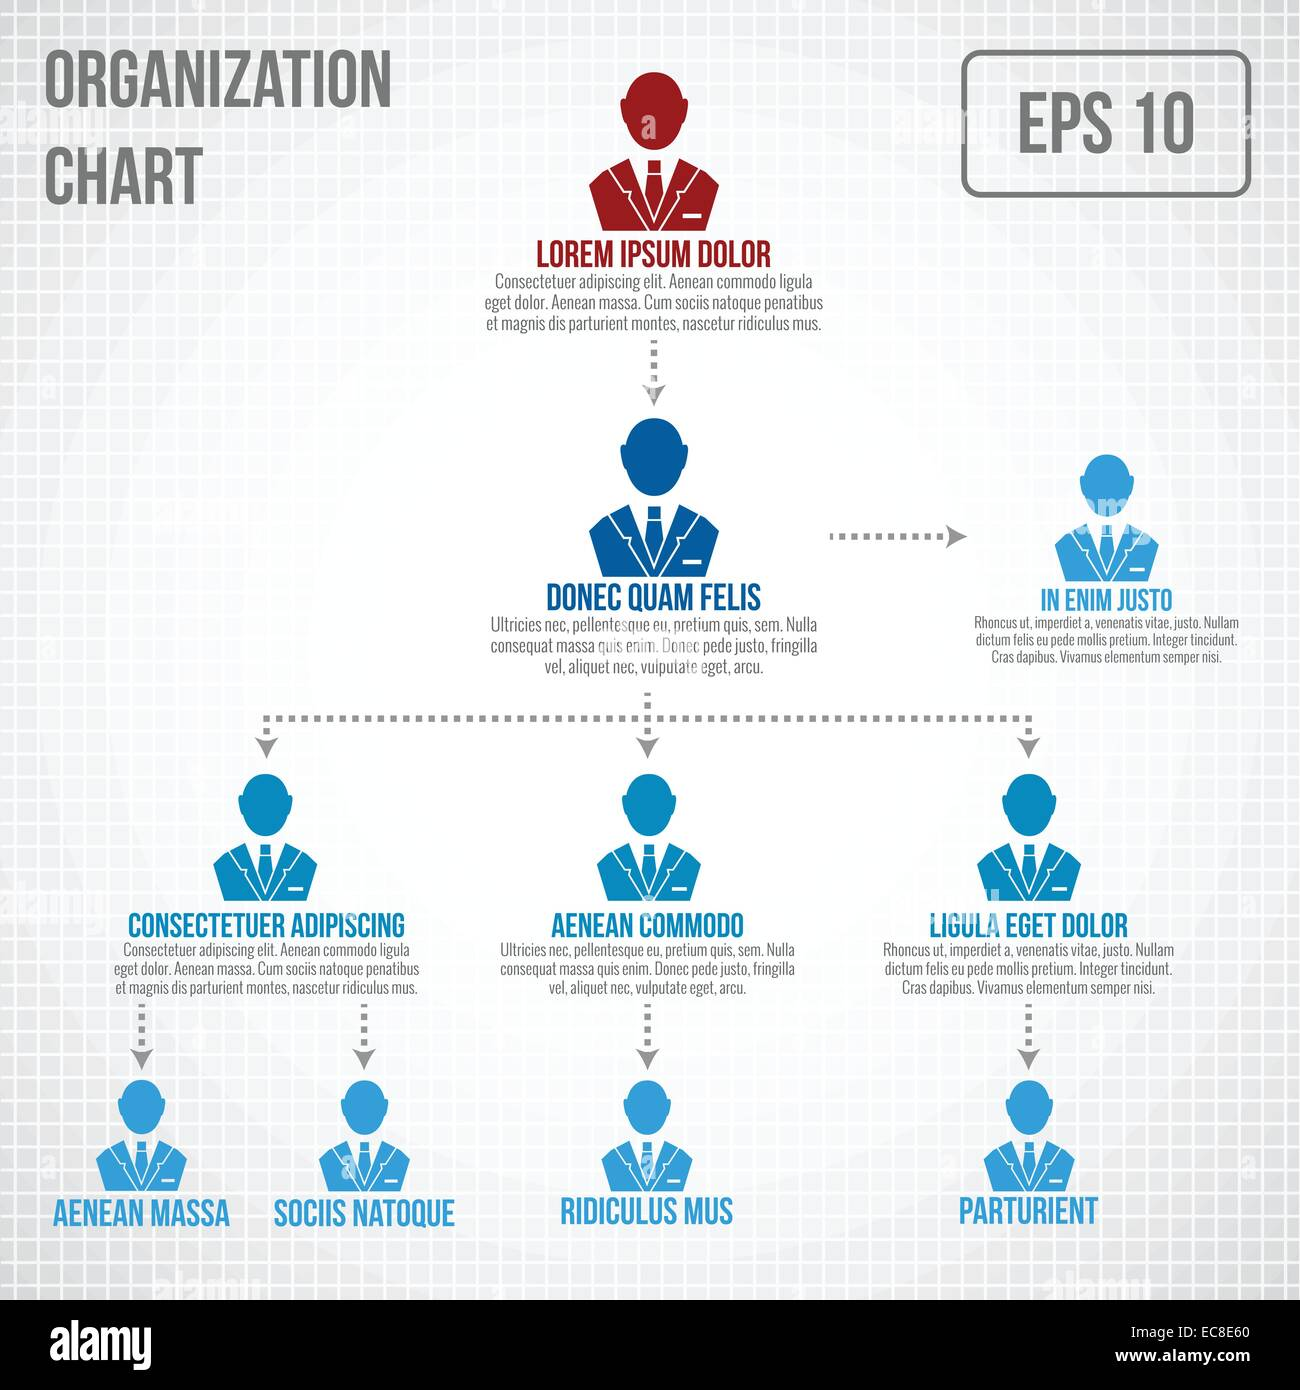 Organizational chart infographic business hierarchy boss to employee organizational chart infographic business hierarchy boss to employee structure vector illustration ccuart Image collections